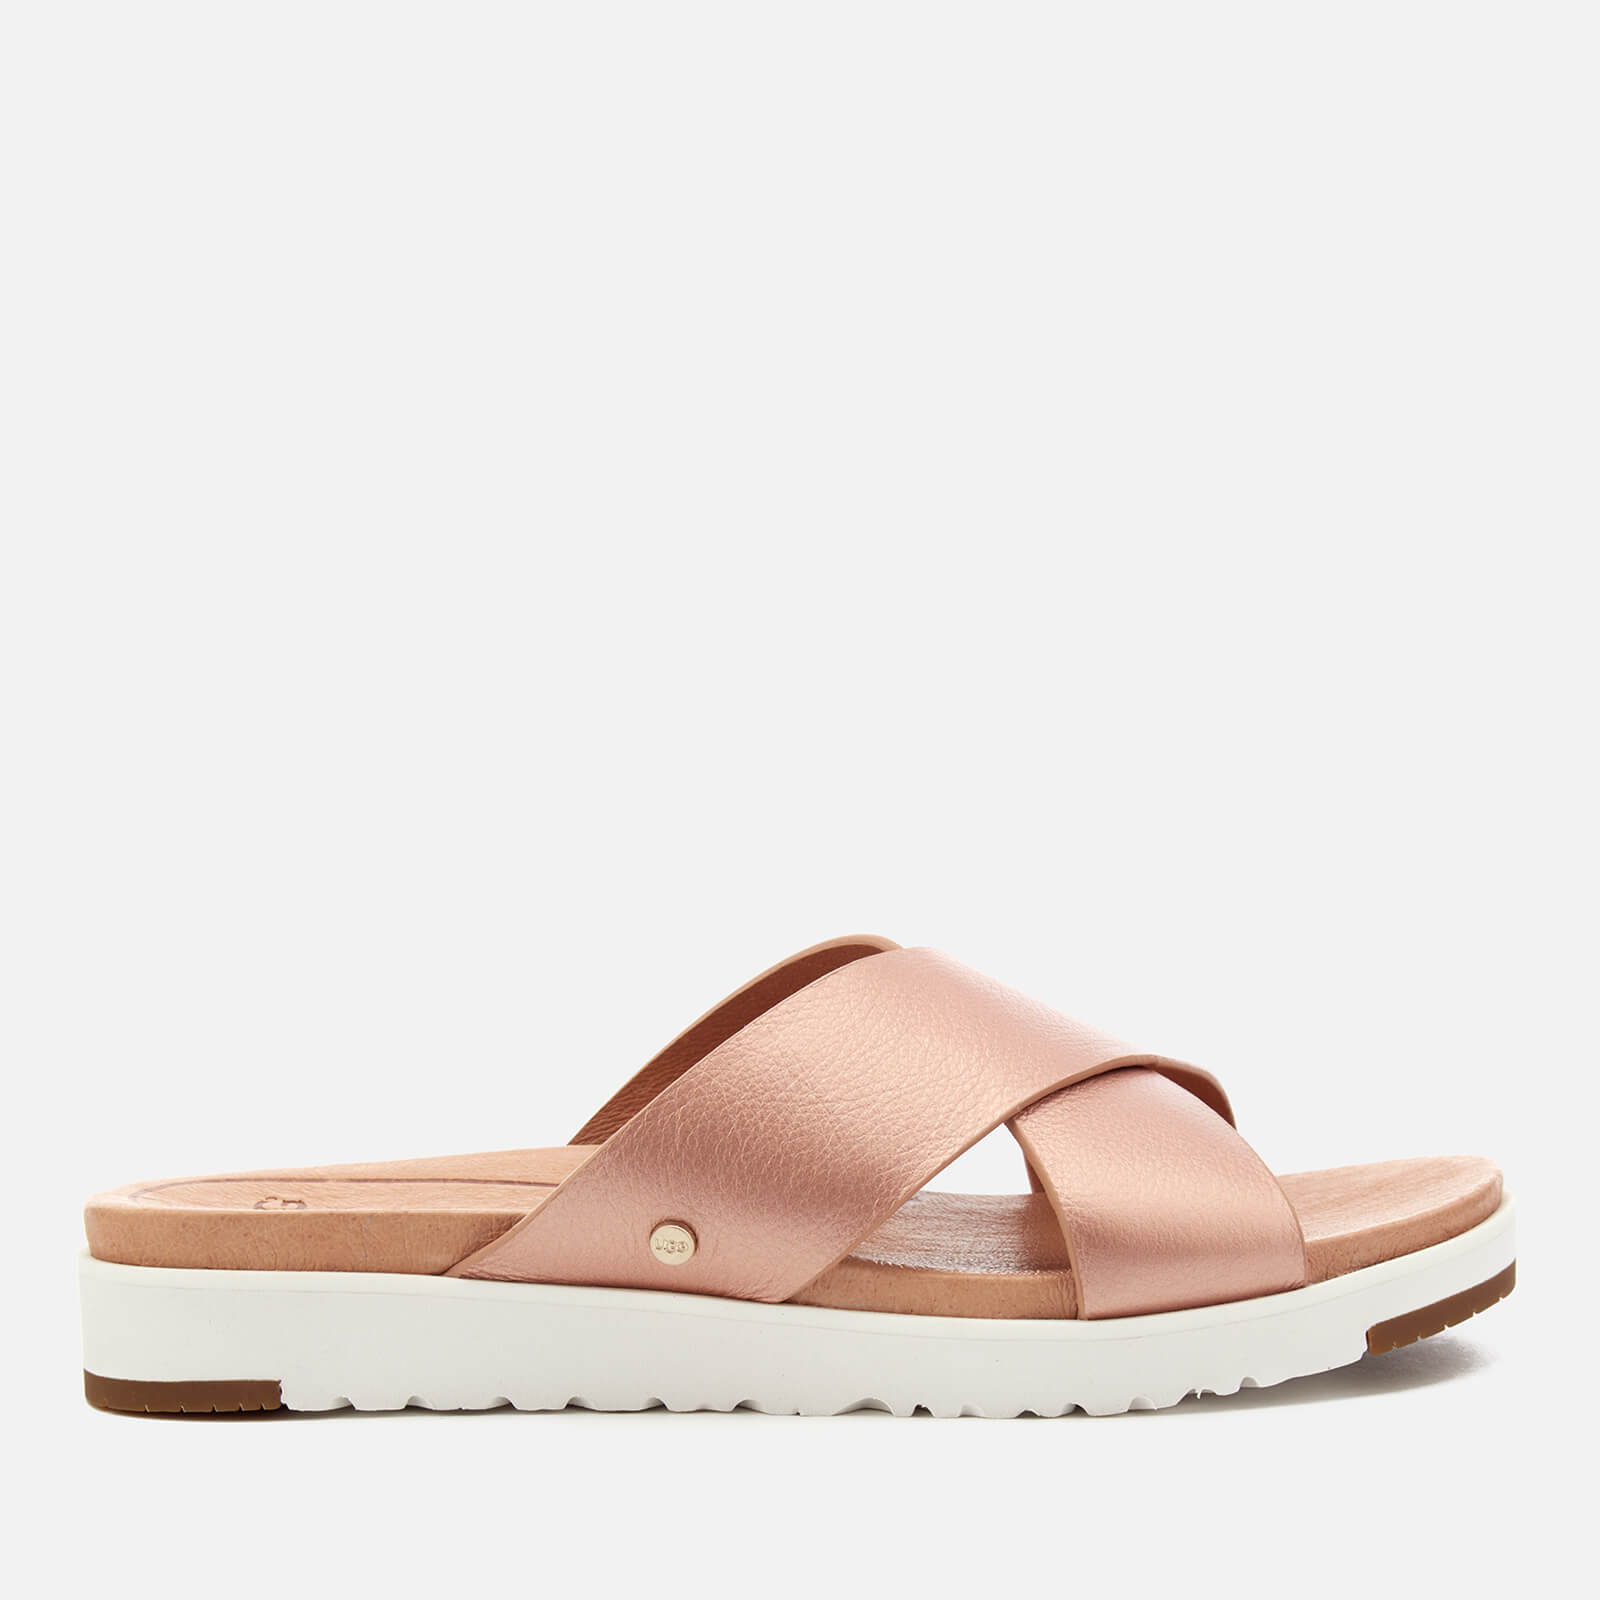 1d6ee4fcf90 UGG Women's Kari Metallic Cross Strap Slide Sandals - Rose Gold ...